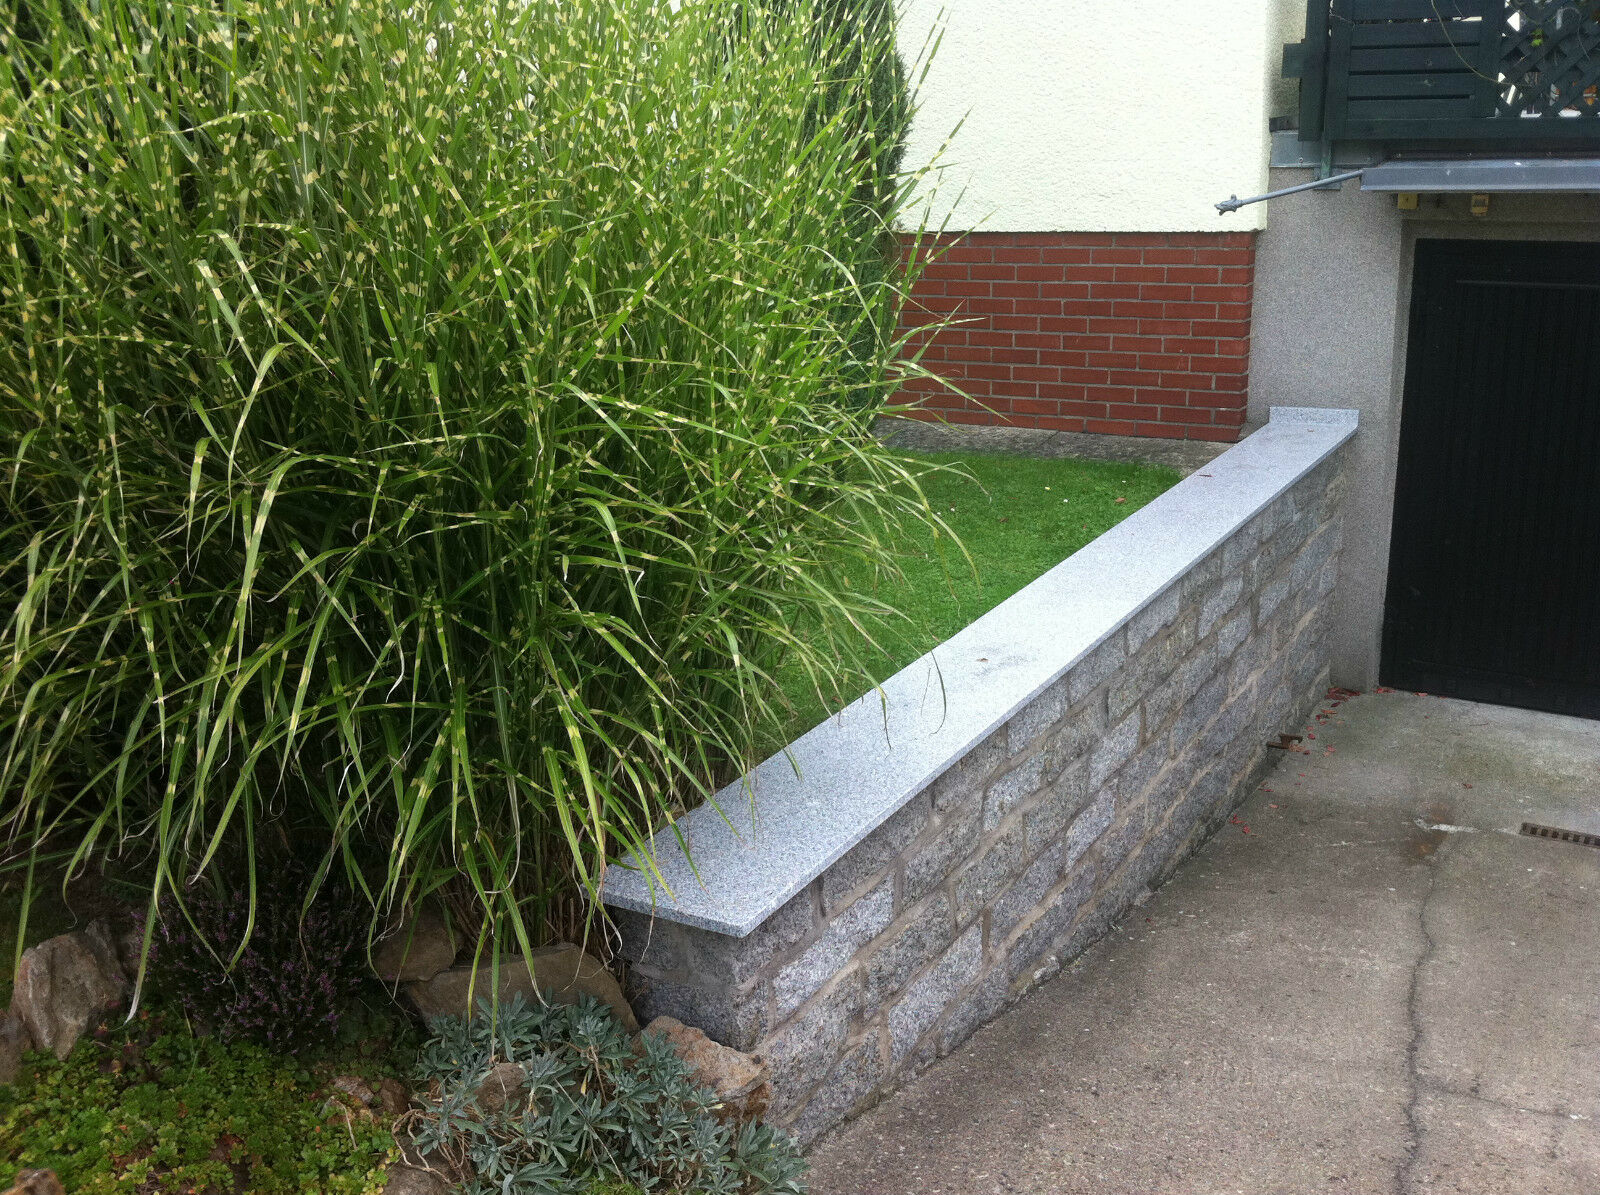 mauerabdeckung naturstein grau massiv granit abdeckplatte mauerplatte stein neu eur 19 99. Black Bedroom Furniture Sets. Home Design Ideas